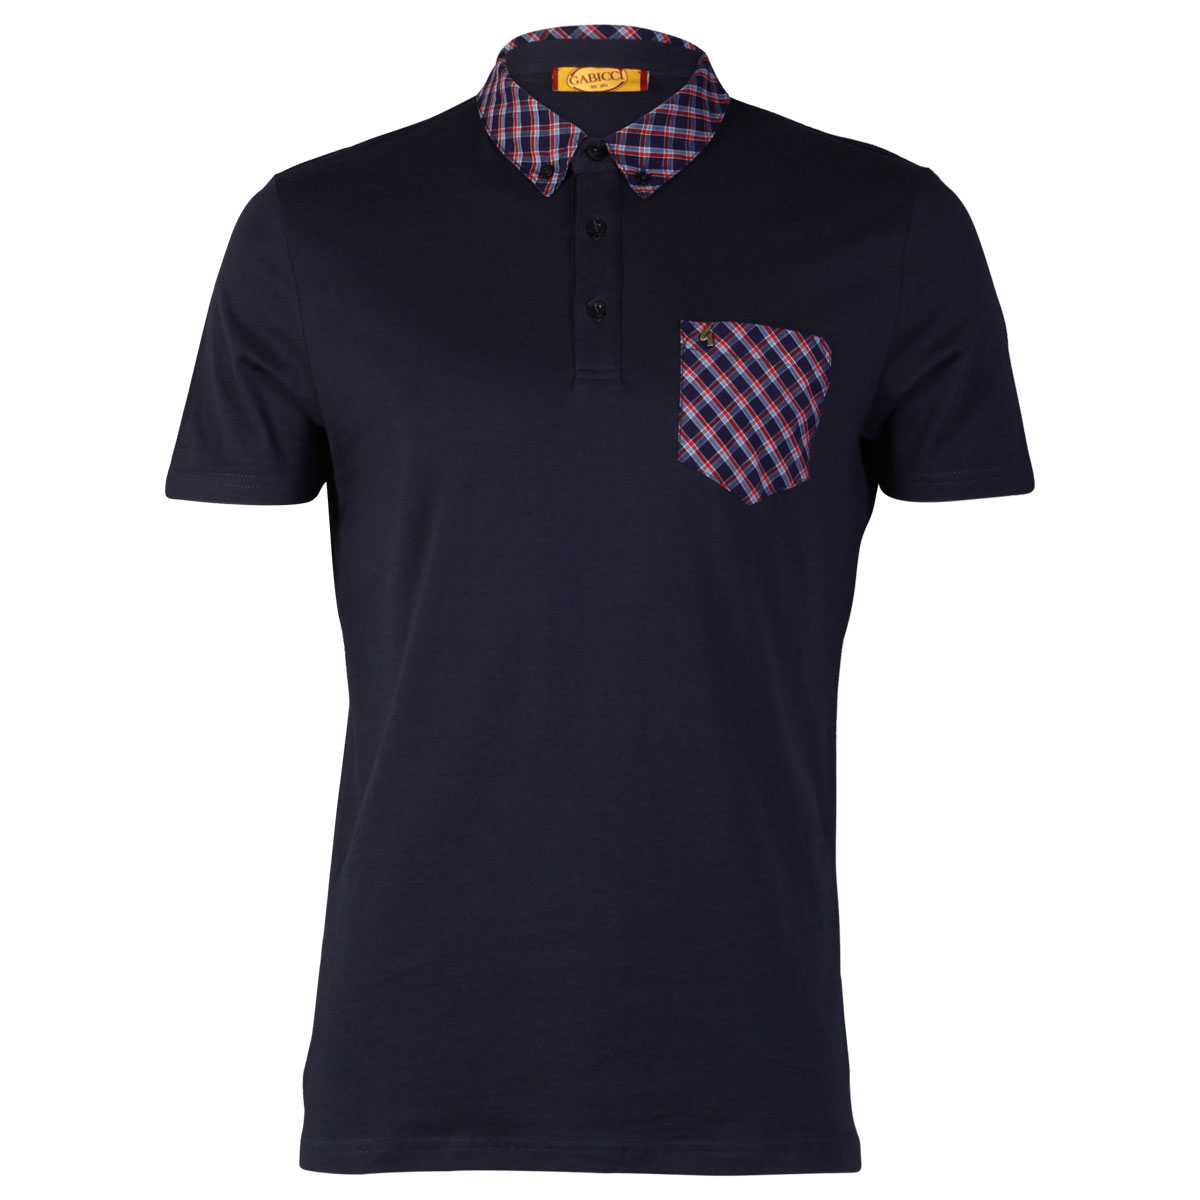 NEW-GABICCI-VINATGE-MENS-CHECKED-COLLARED-PRINTED-POLO-T-SHIRT-TOP-SIZE-S-XXL